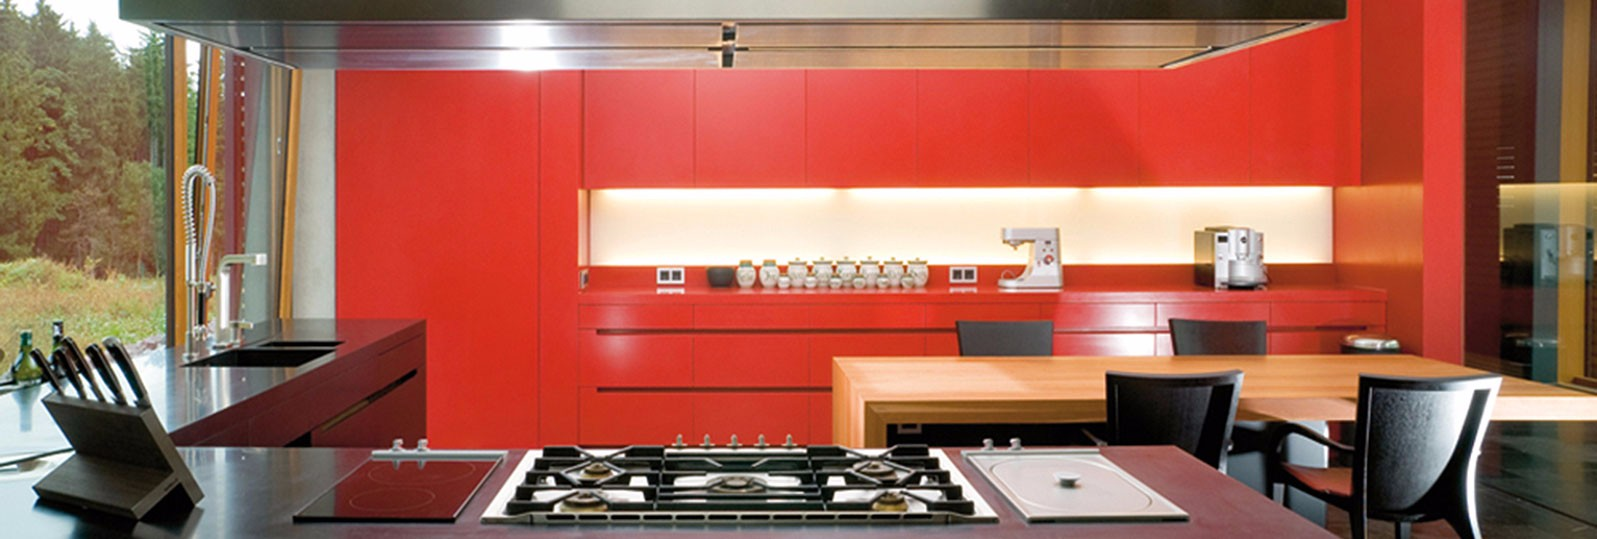 black-and-red-kitchen